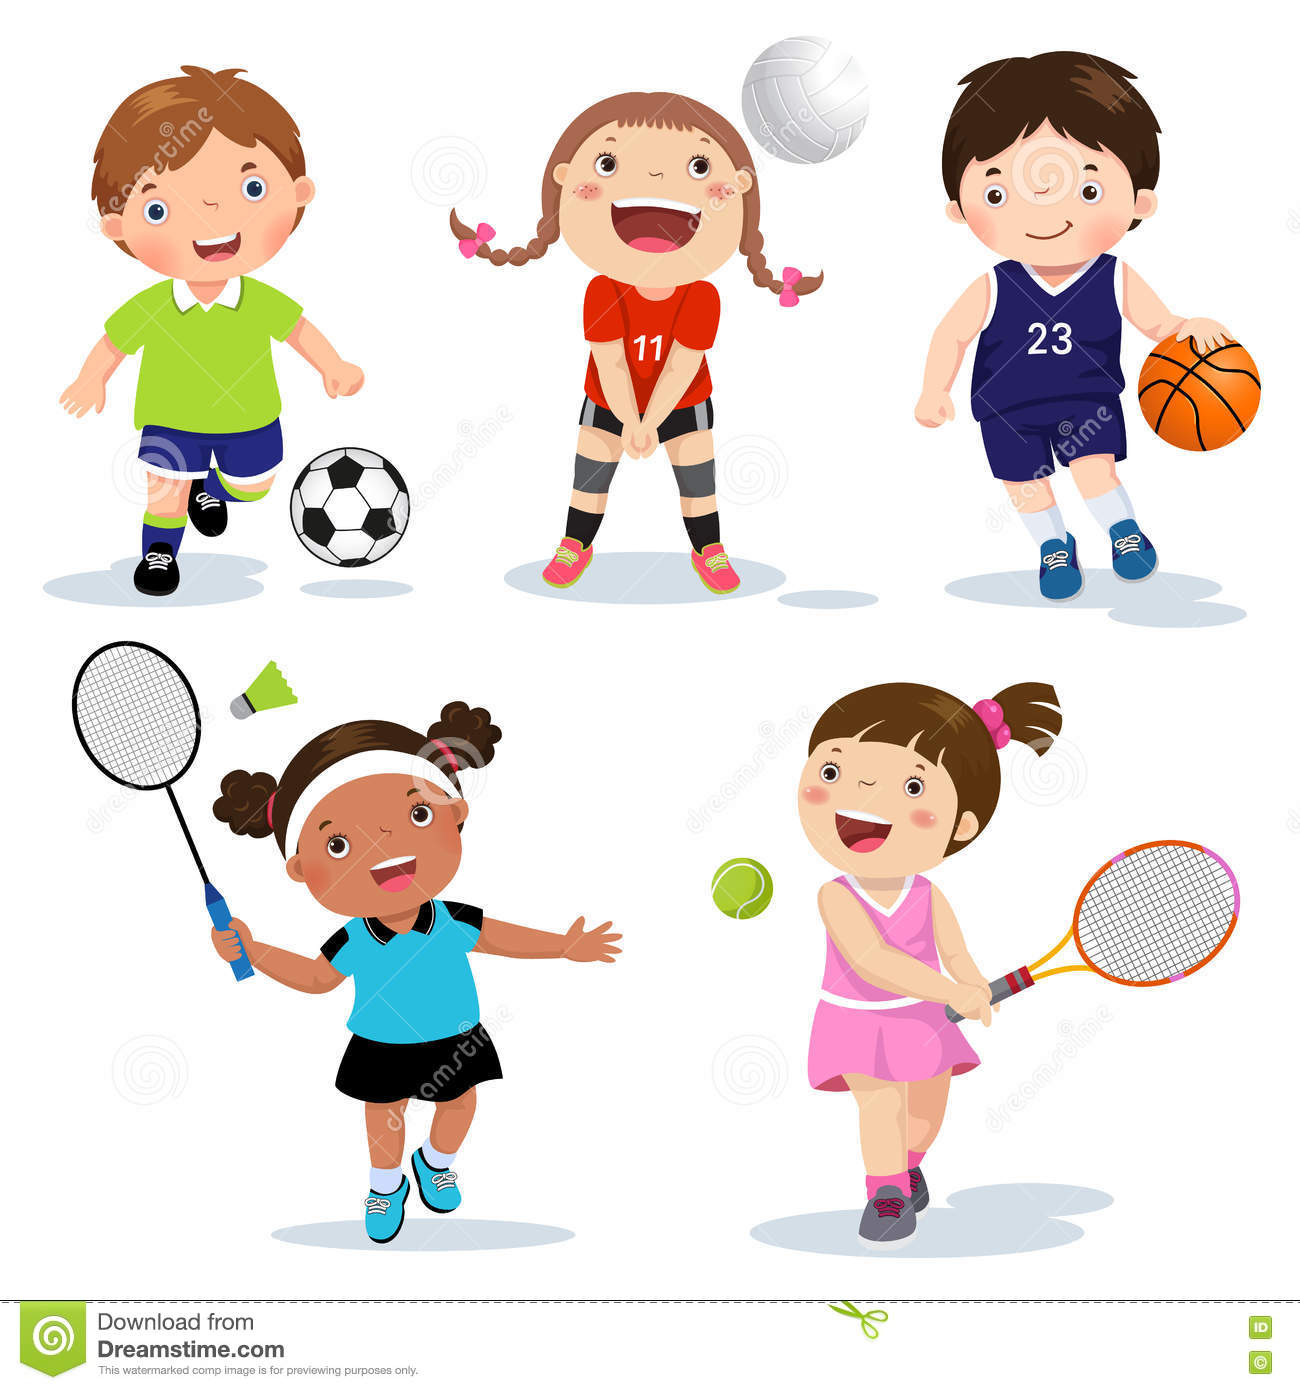 Cartoon Various Sports Kids On A White Background Stock Vector - Illustration of character. ball: 72378870